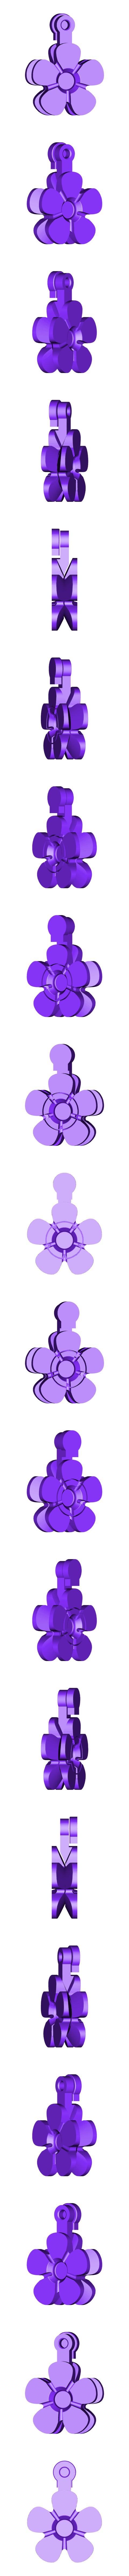 flower_fob_.stl Download free STL file Flower Fobs... Flower Key Fobs that Spin! • 3D printing object, Muzz64